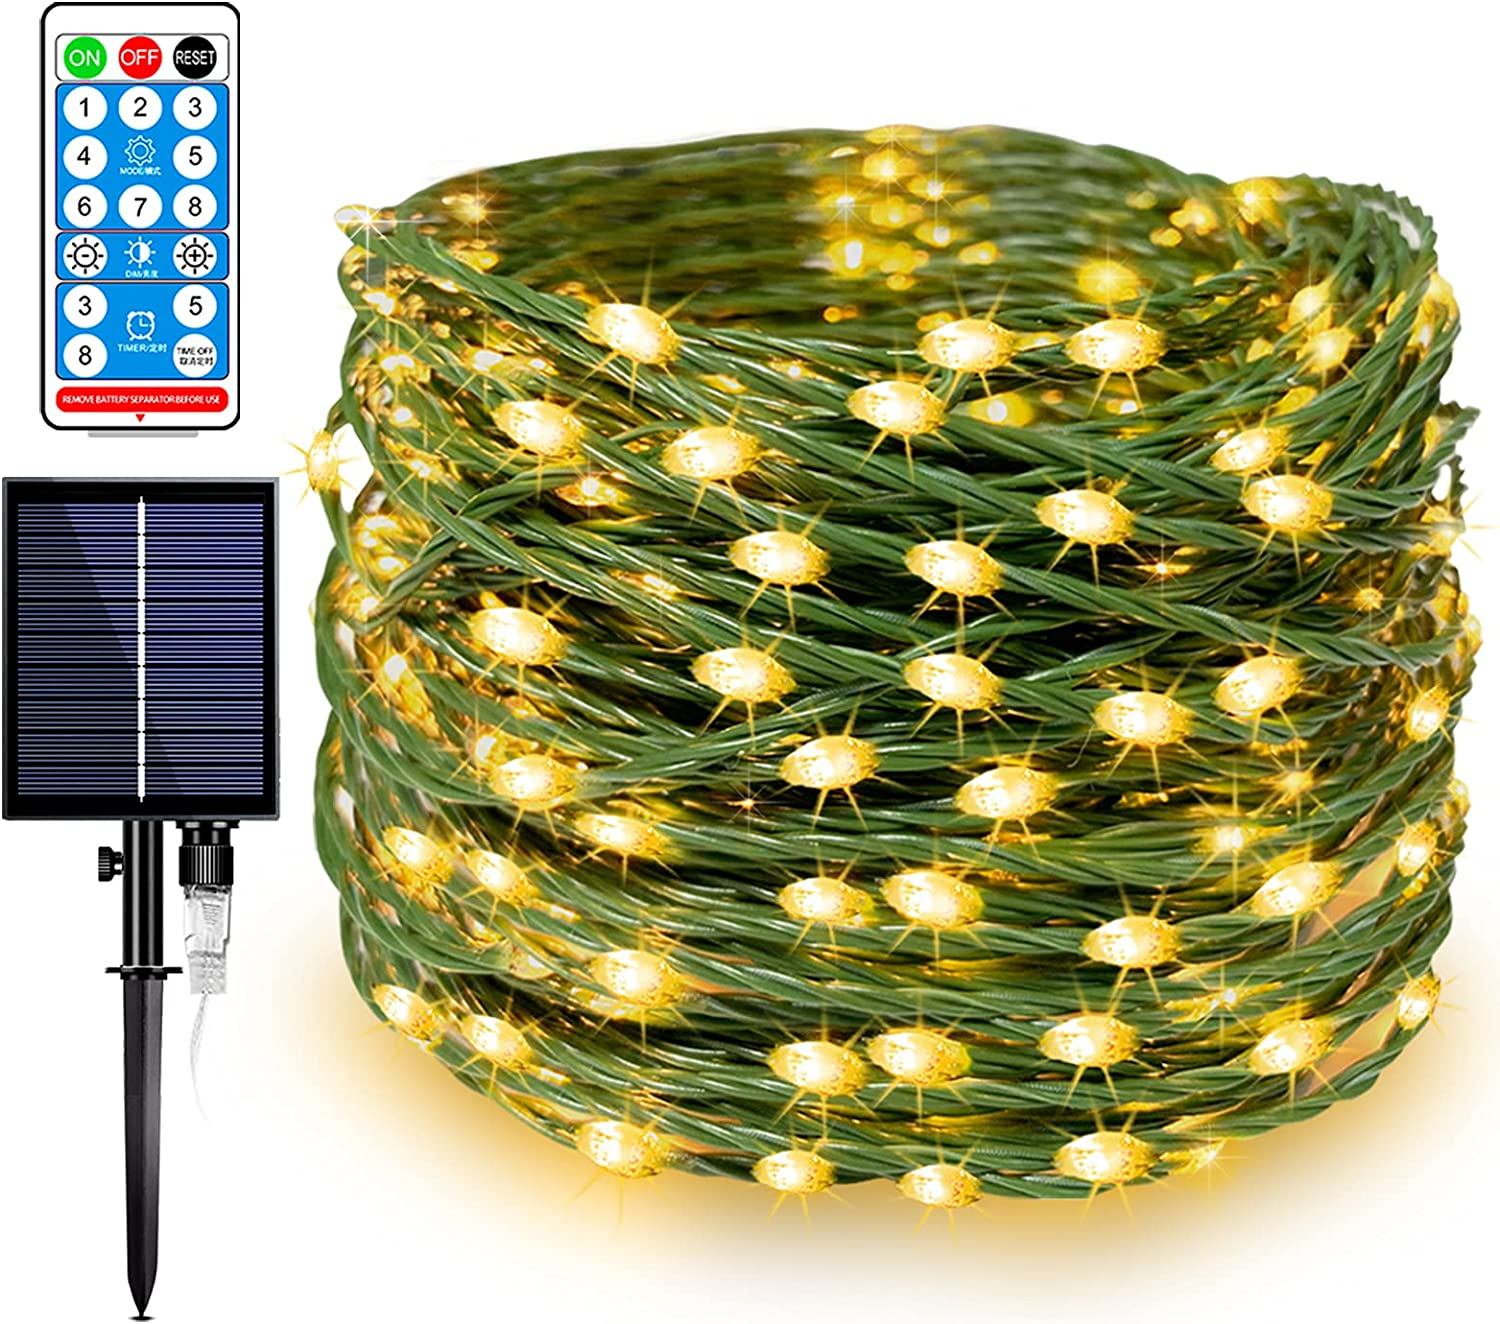 Solar Fairy String Lights 300 LED 108 Feet, Upgraded Outdoor IP65 Waterproof Stronger & Thicker Wire 1200mAH Solar Power Twinkle Lights w/ 8 Modes & Remote for Patio, Garden, Backyard Decor Warm White